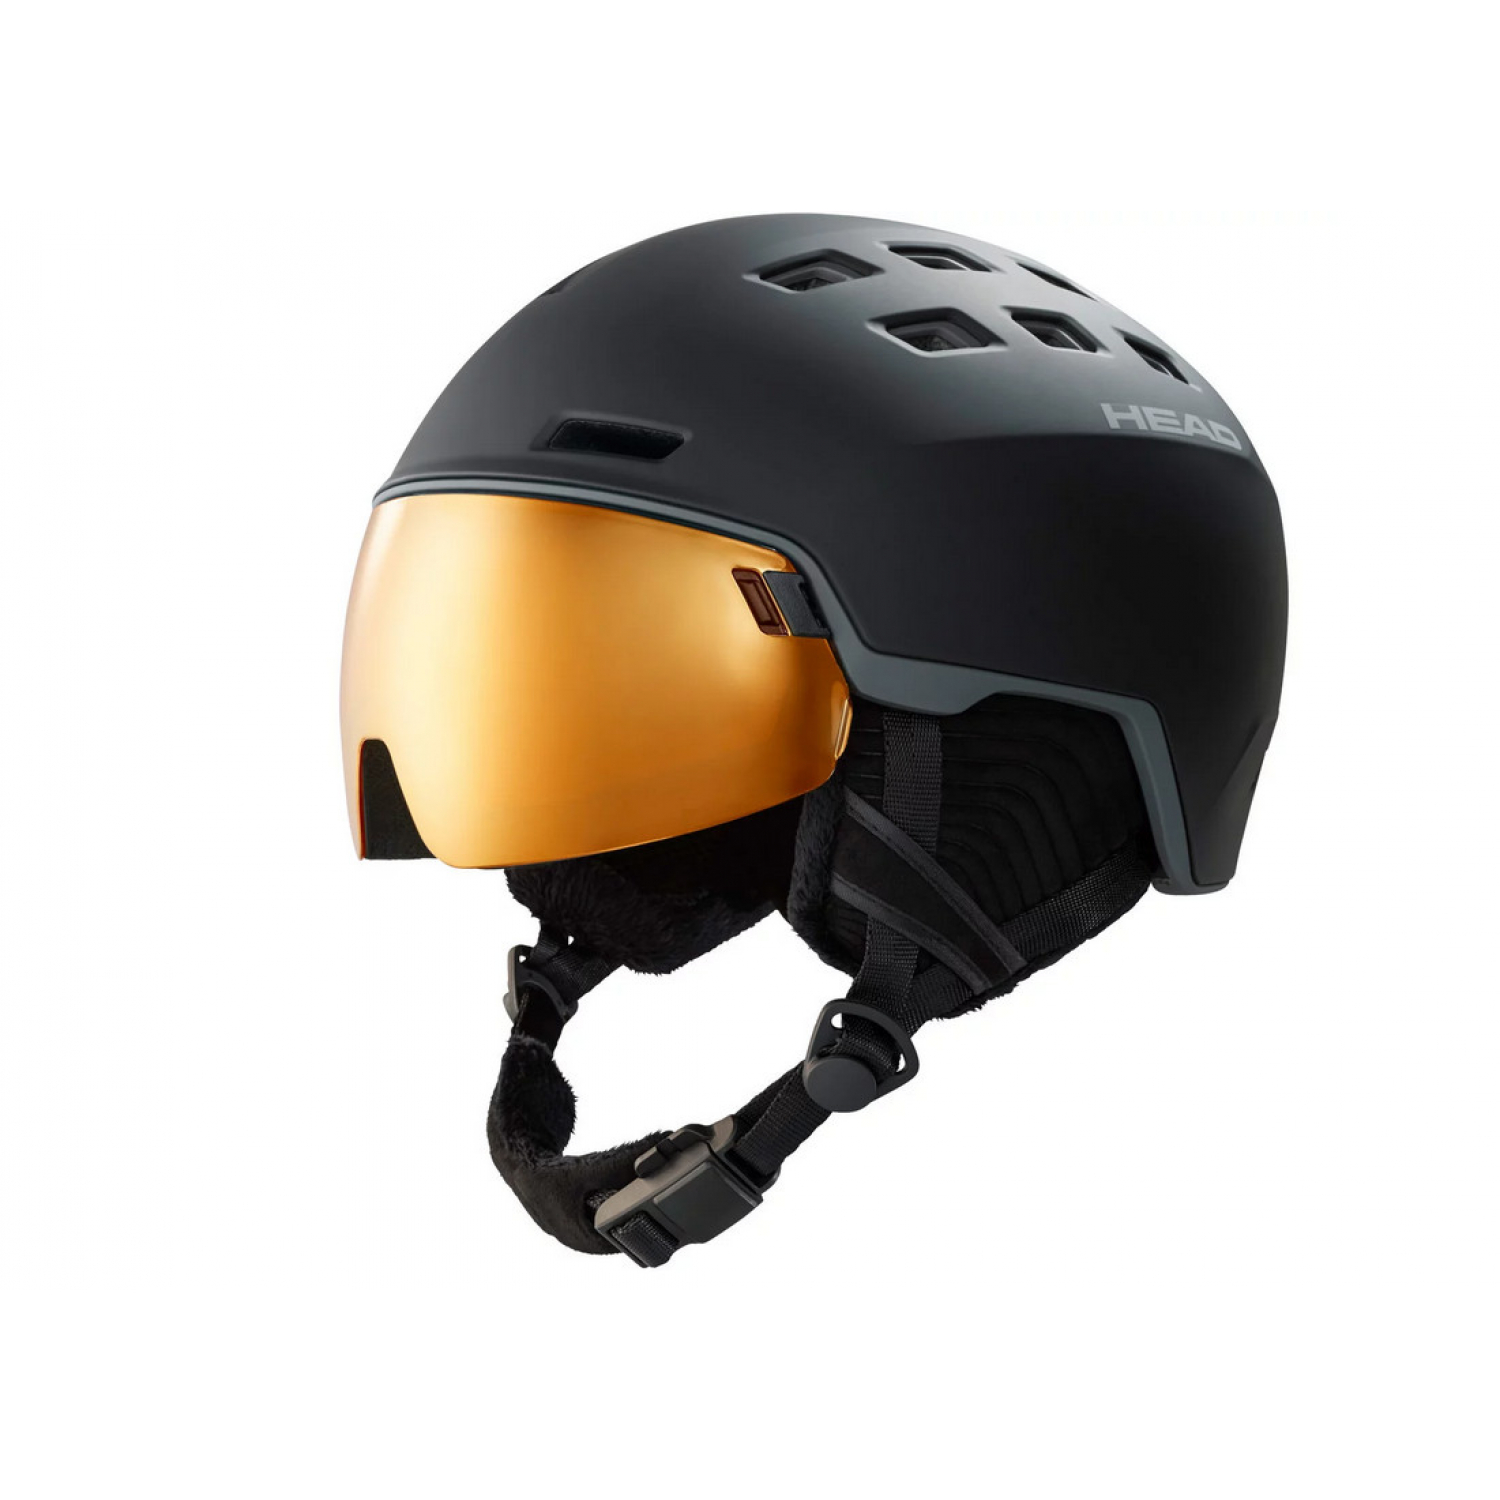 Head Radar Pola Black Skihelm 52-55cm